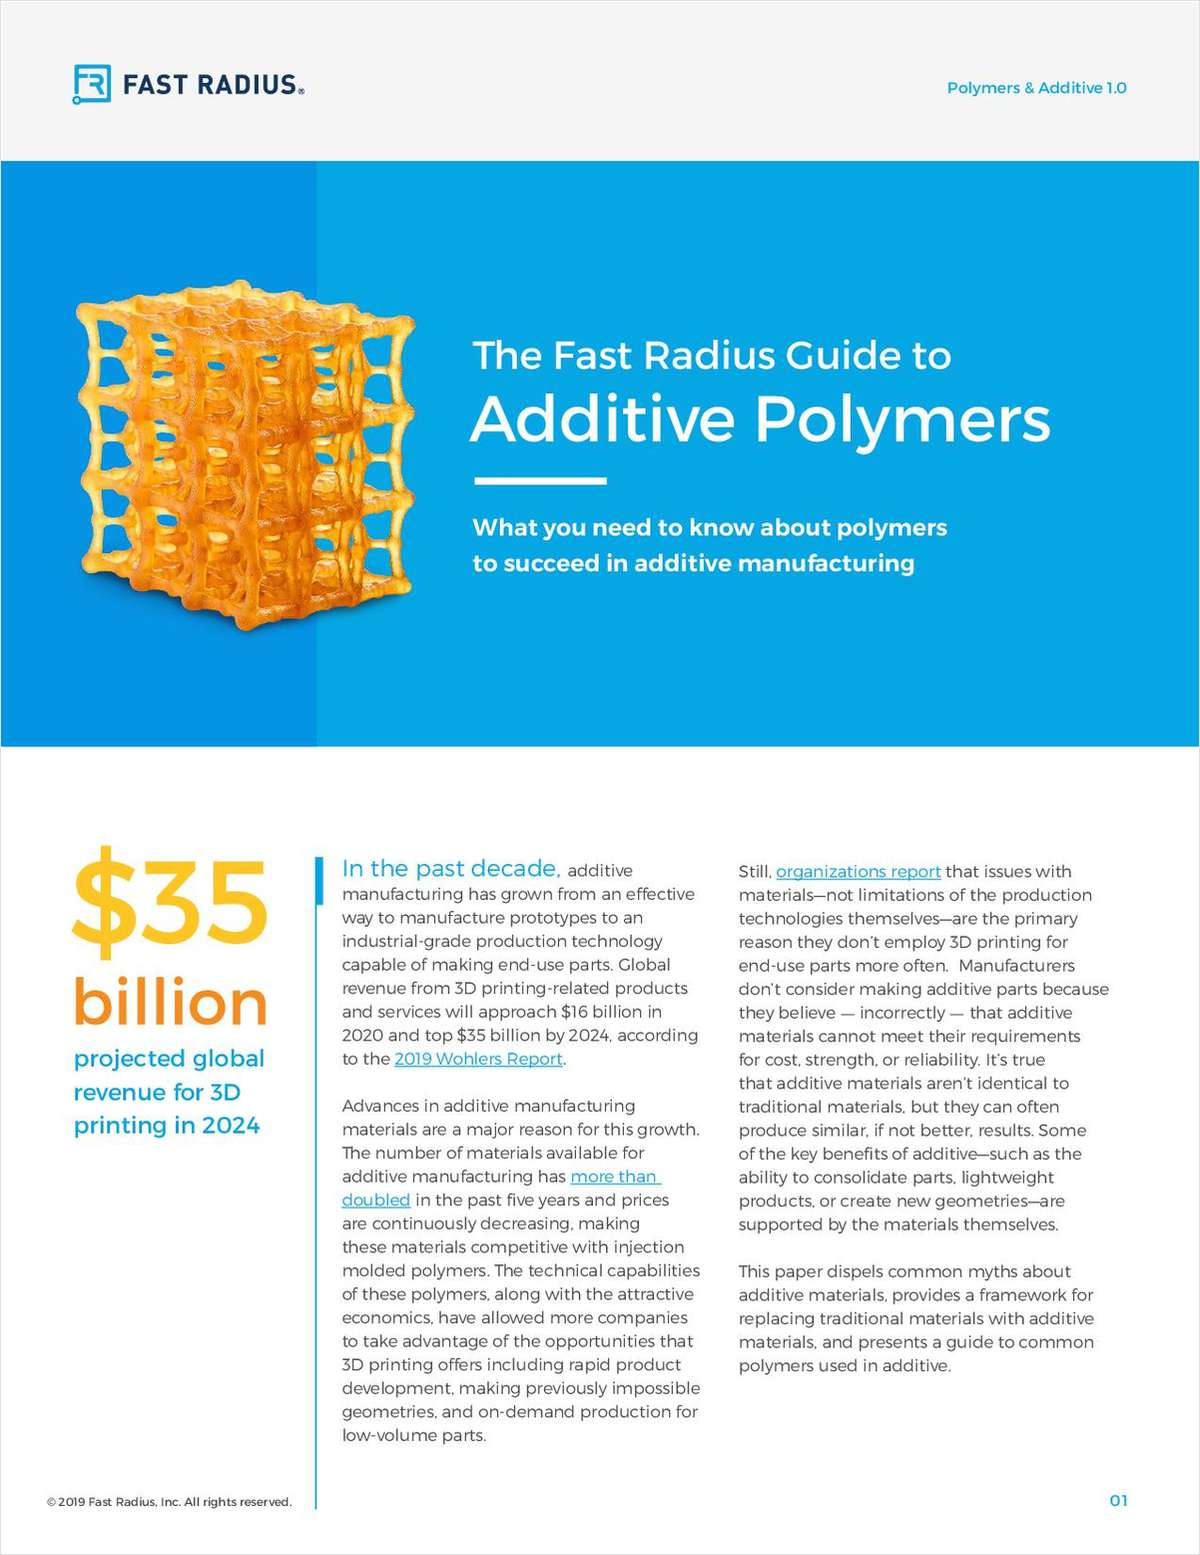 The Fast Radius Guide to Additive Polymers